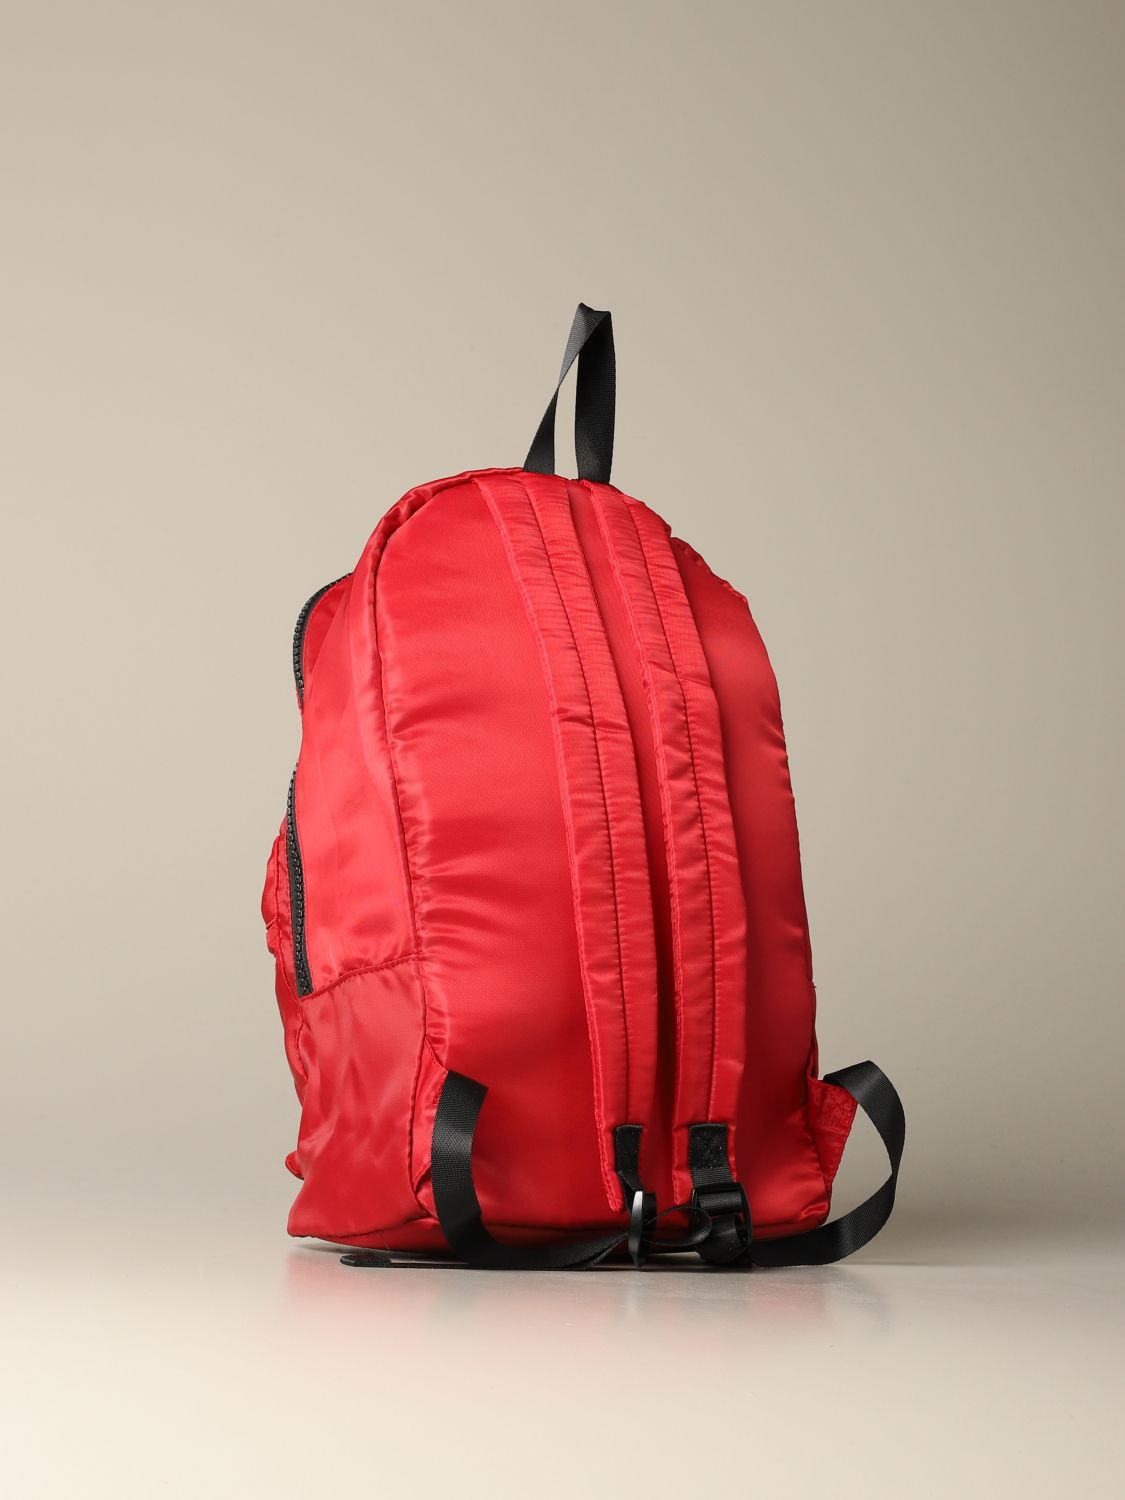 Liu Jo backpack in patterned nylon red 2